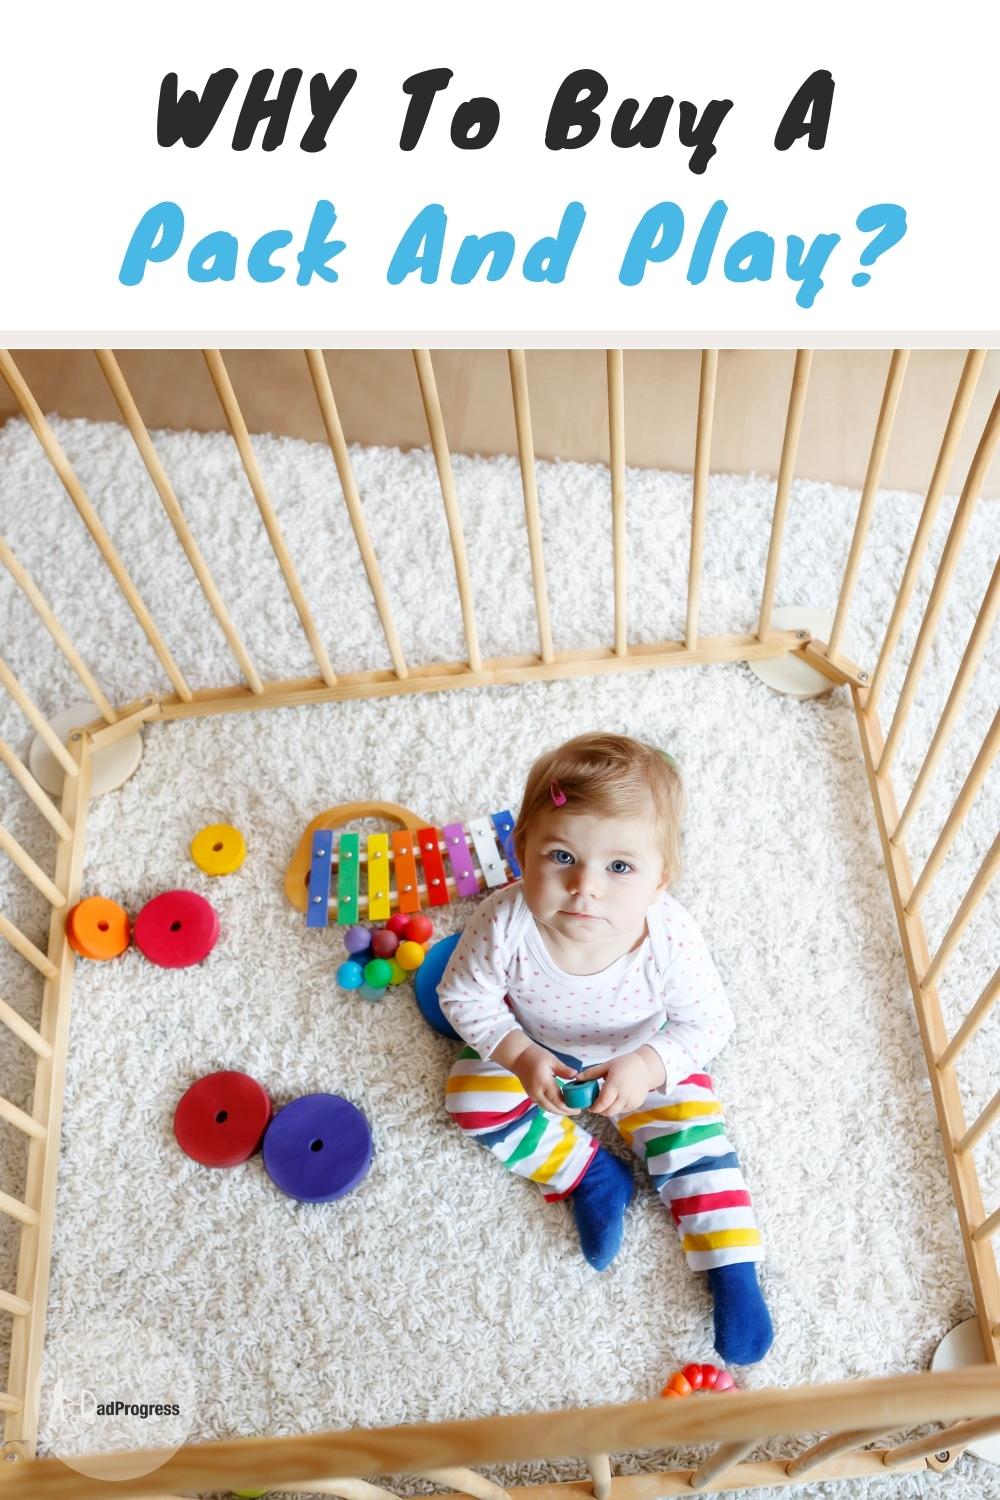 I was looking for the best playpen ideas and concluded a small study to find the best pack and play for my baby. But why should you even buy it for your infant? I invite you to read why and how to find the best one for you!